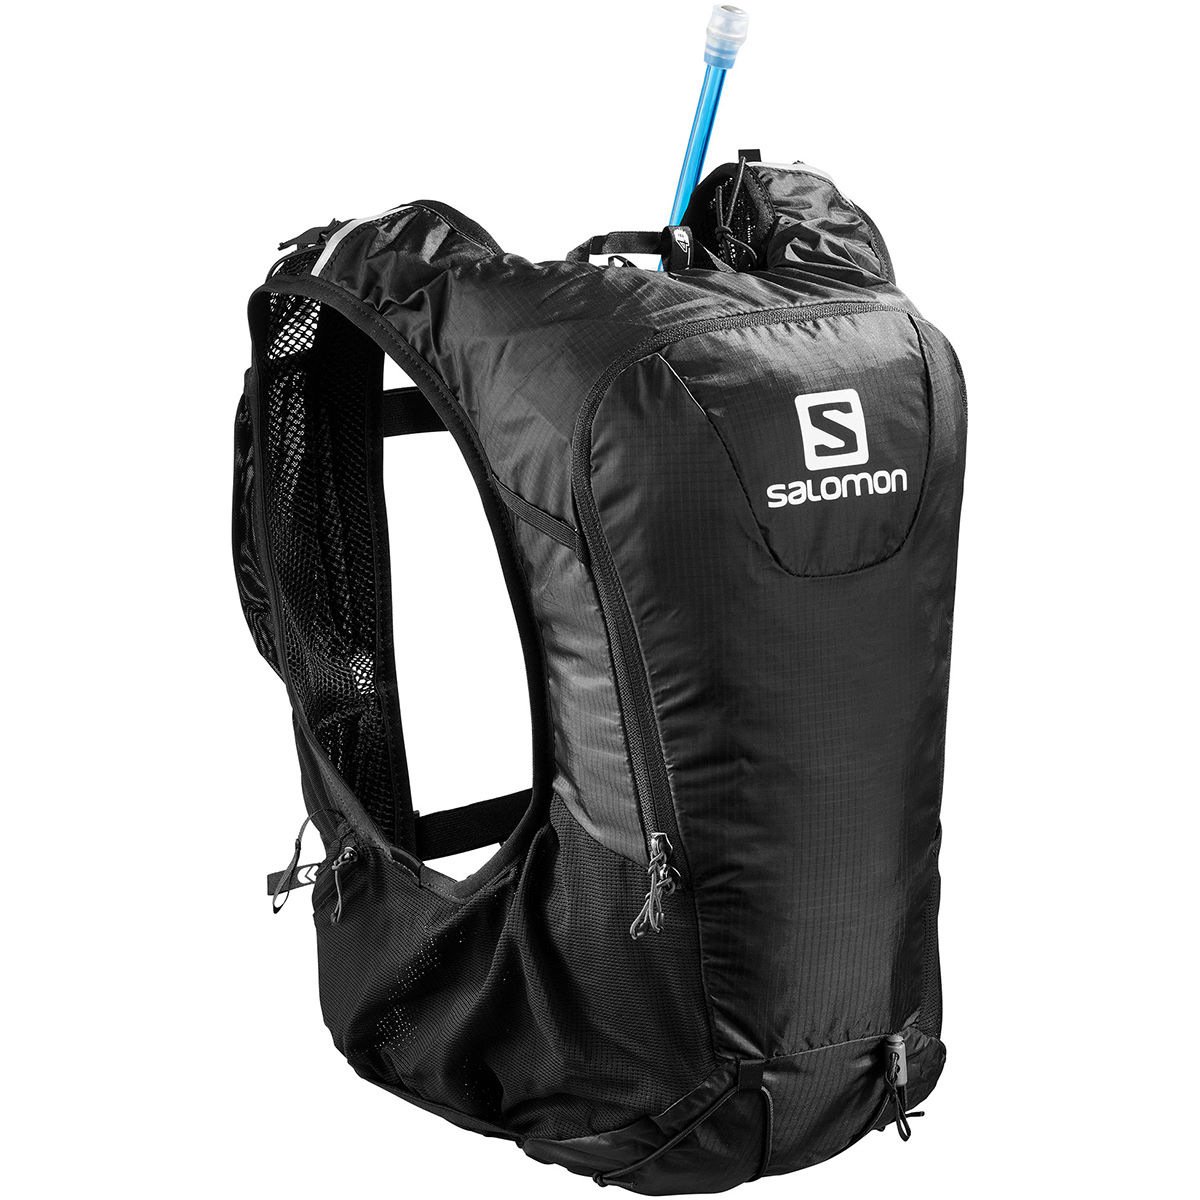 Salomon Skin Pro 10 Set   Hydration Packs